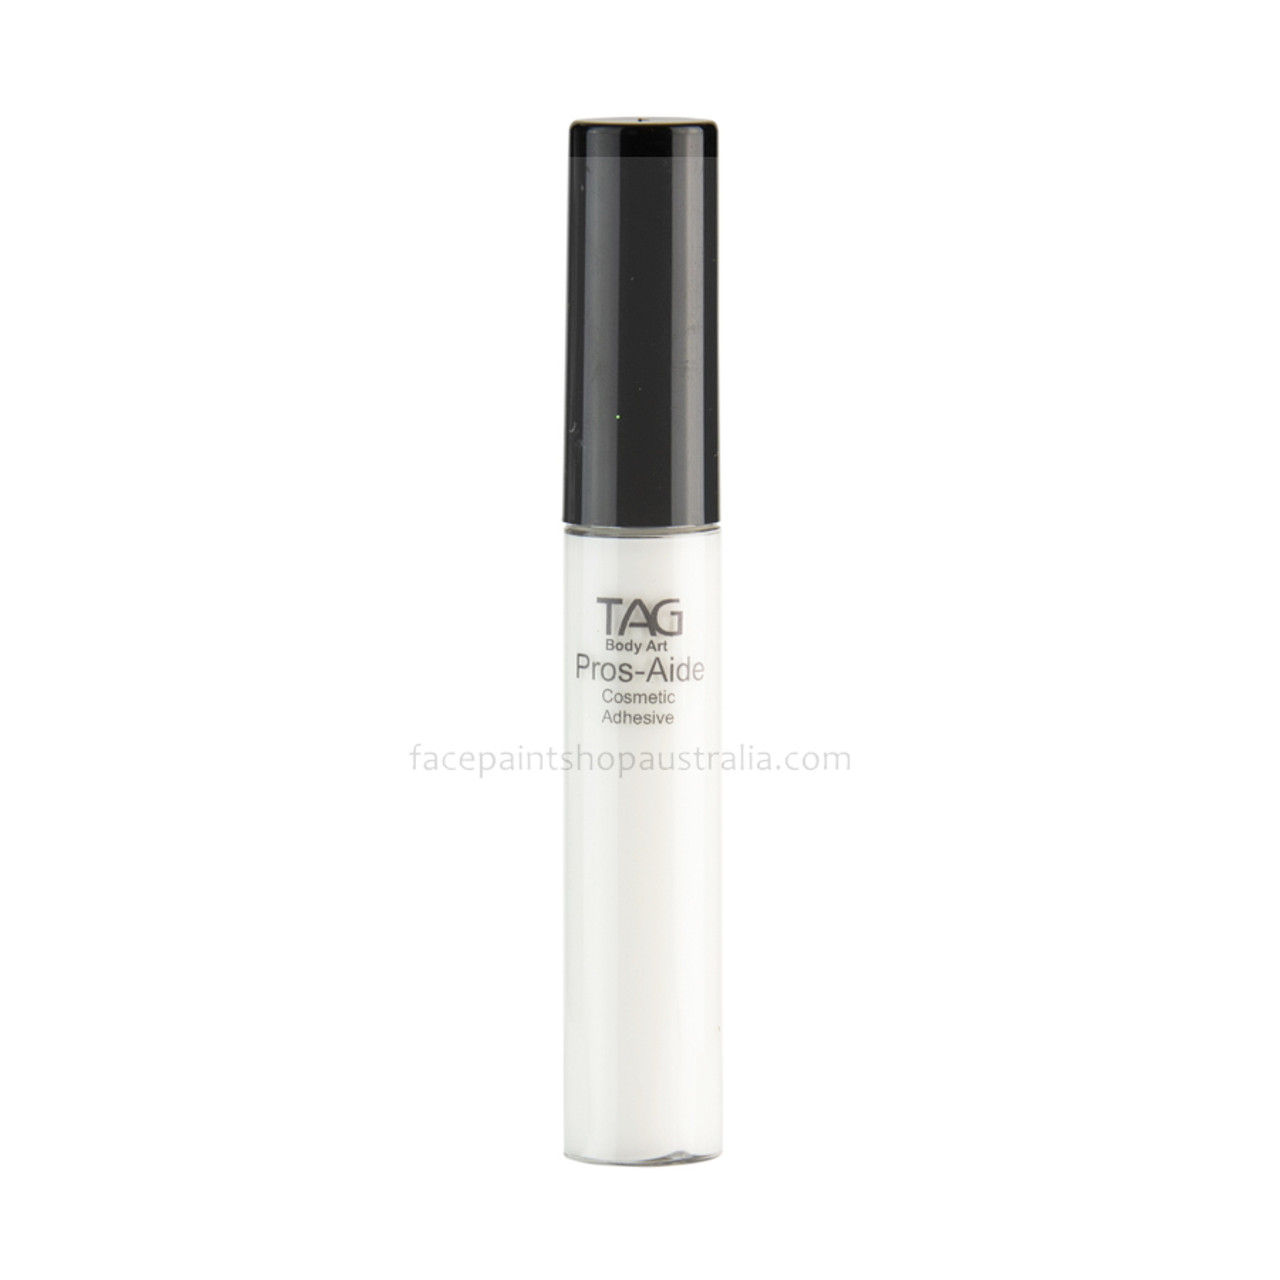 Pros Aide Cosmetic Adhesive Body Glue 10ml Bottle Tag Face Paint Shop Australia